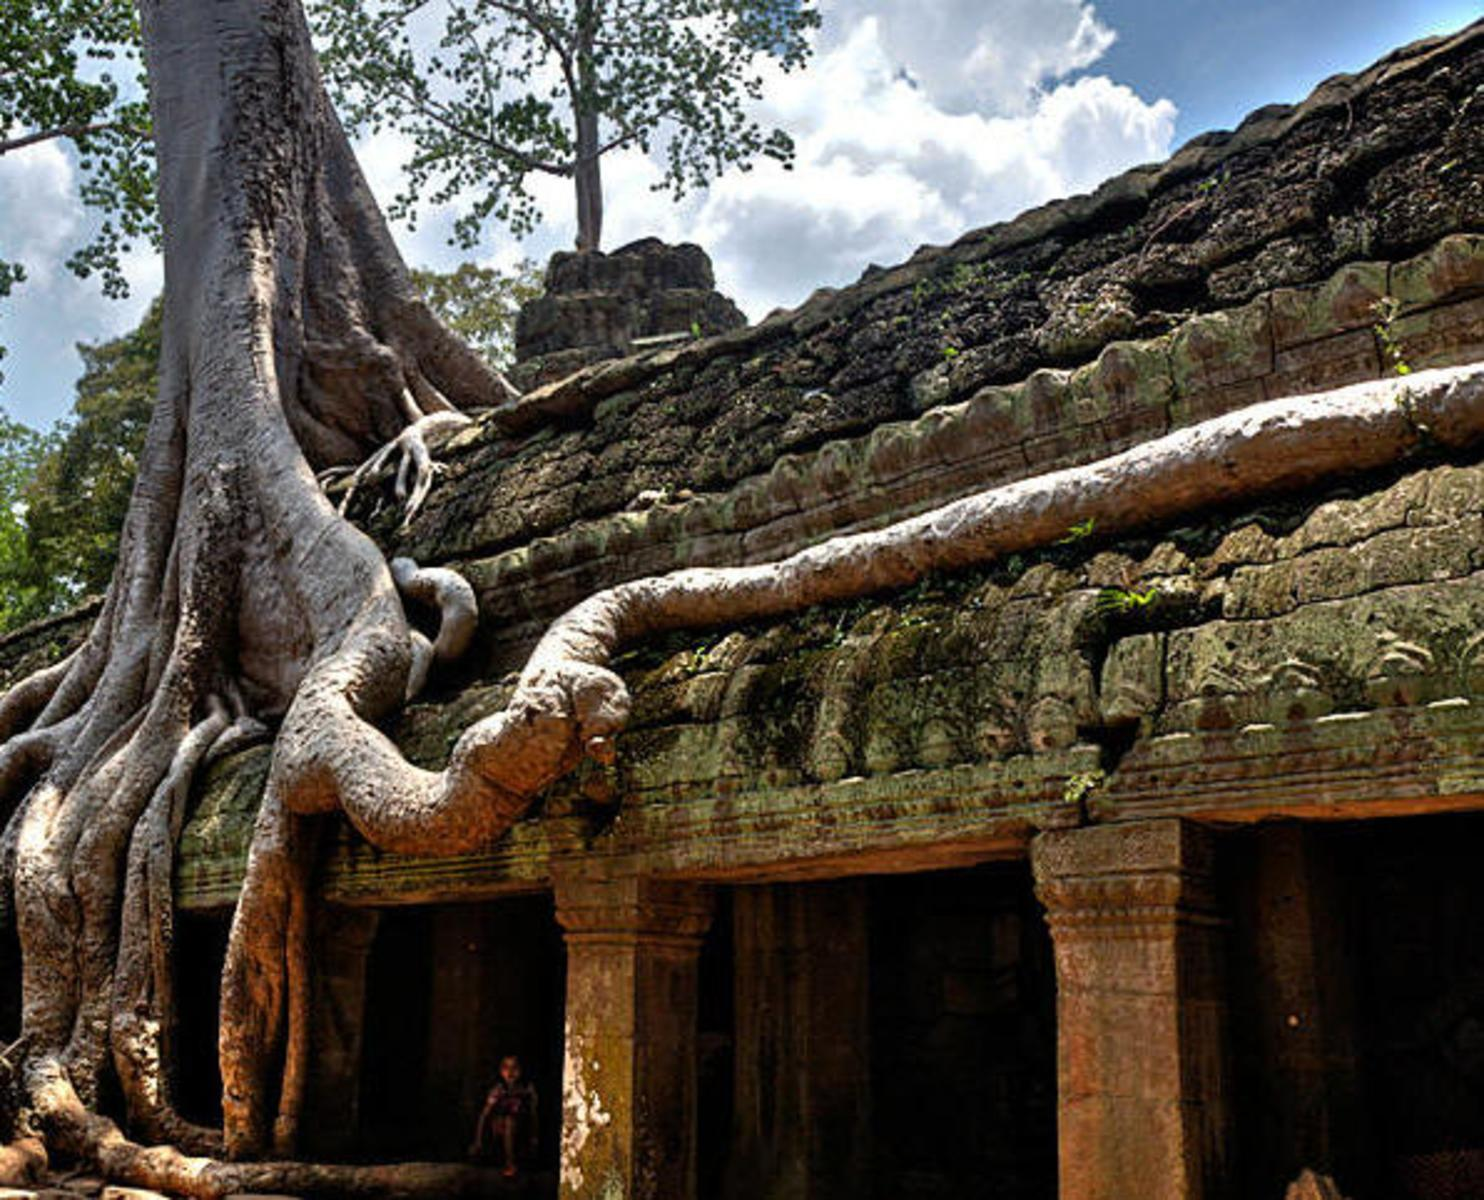 buddhist singles in seaman Image: richard seaman the nightingale floor  as buddhism swept  the temple was built in 642 ce and has since housed the single most venerated.